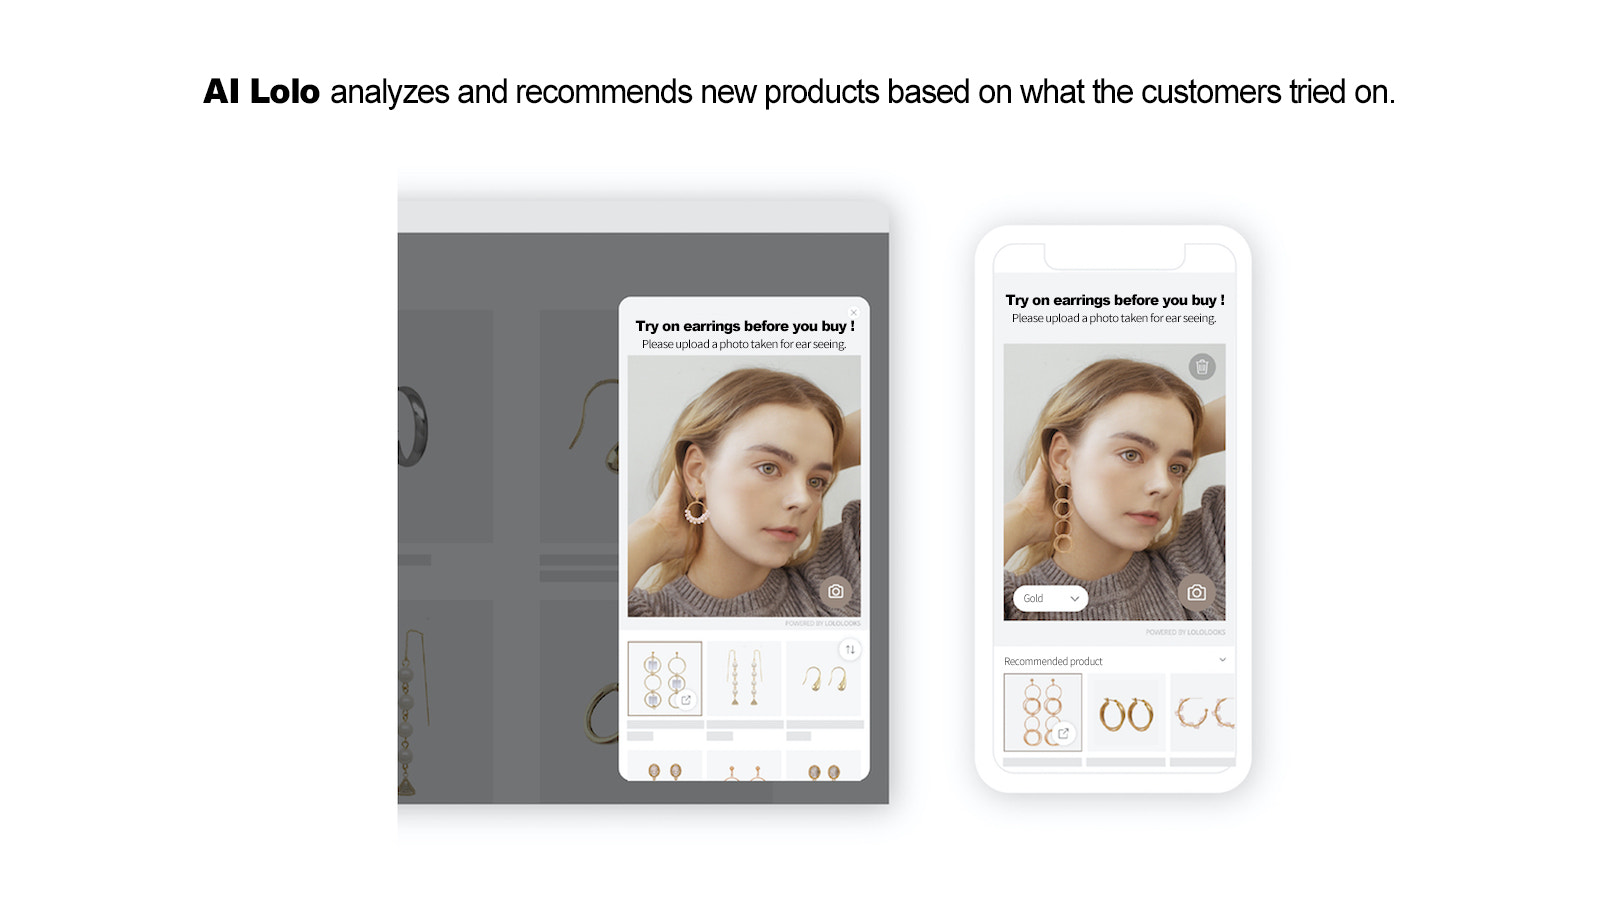 AI Lolo analyzes and recommends new products.